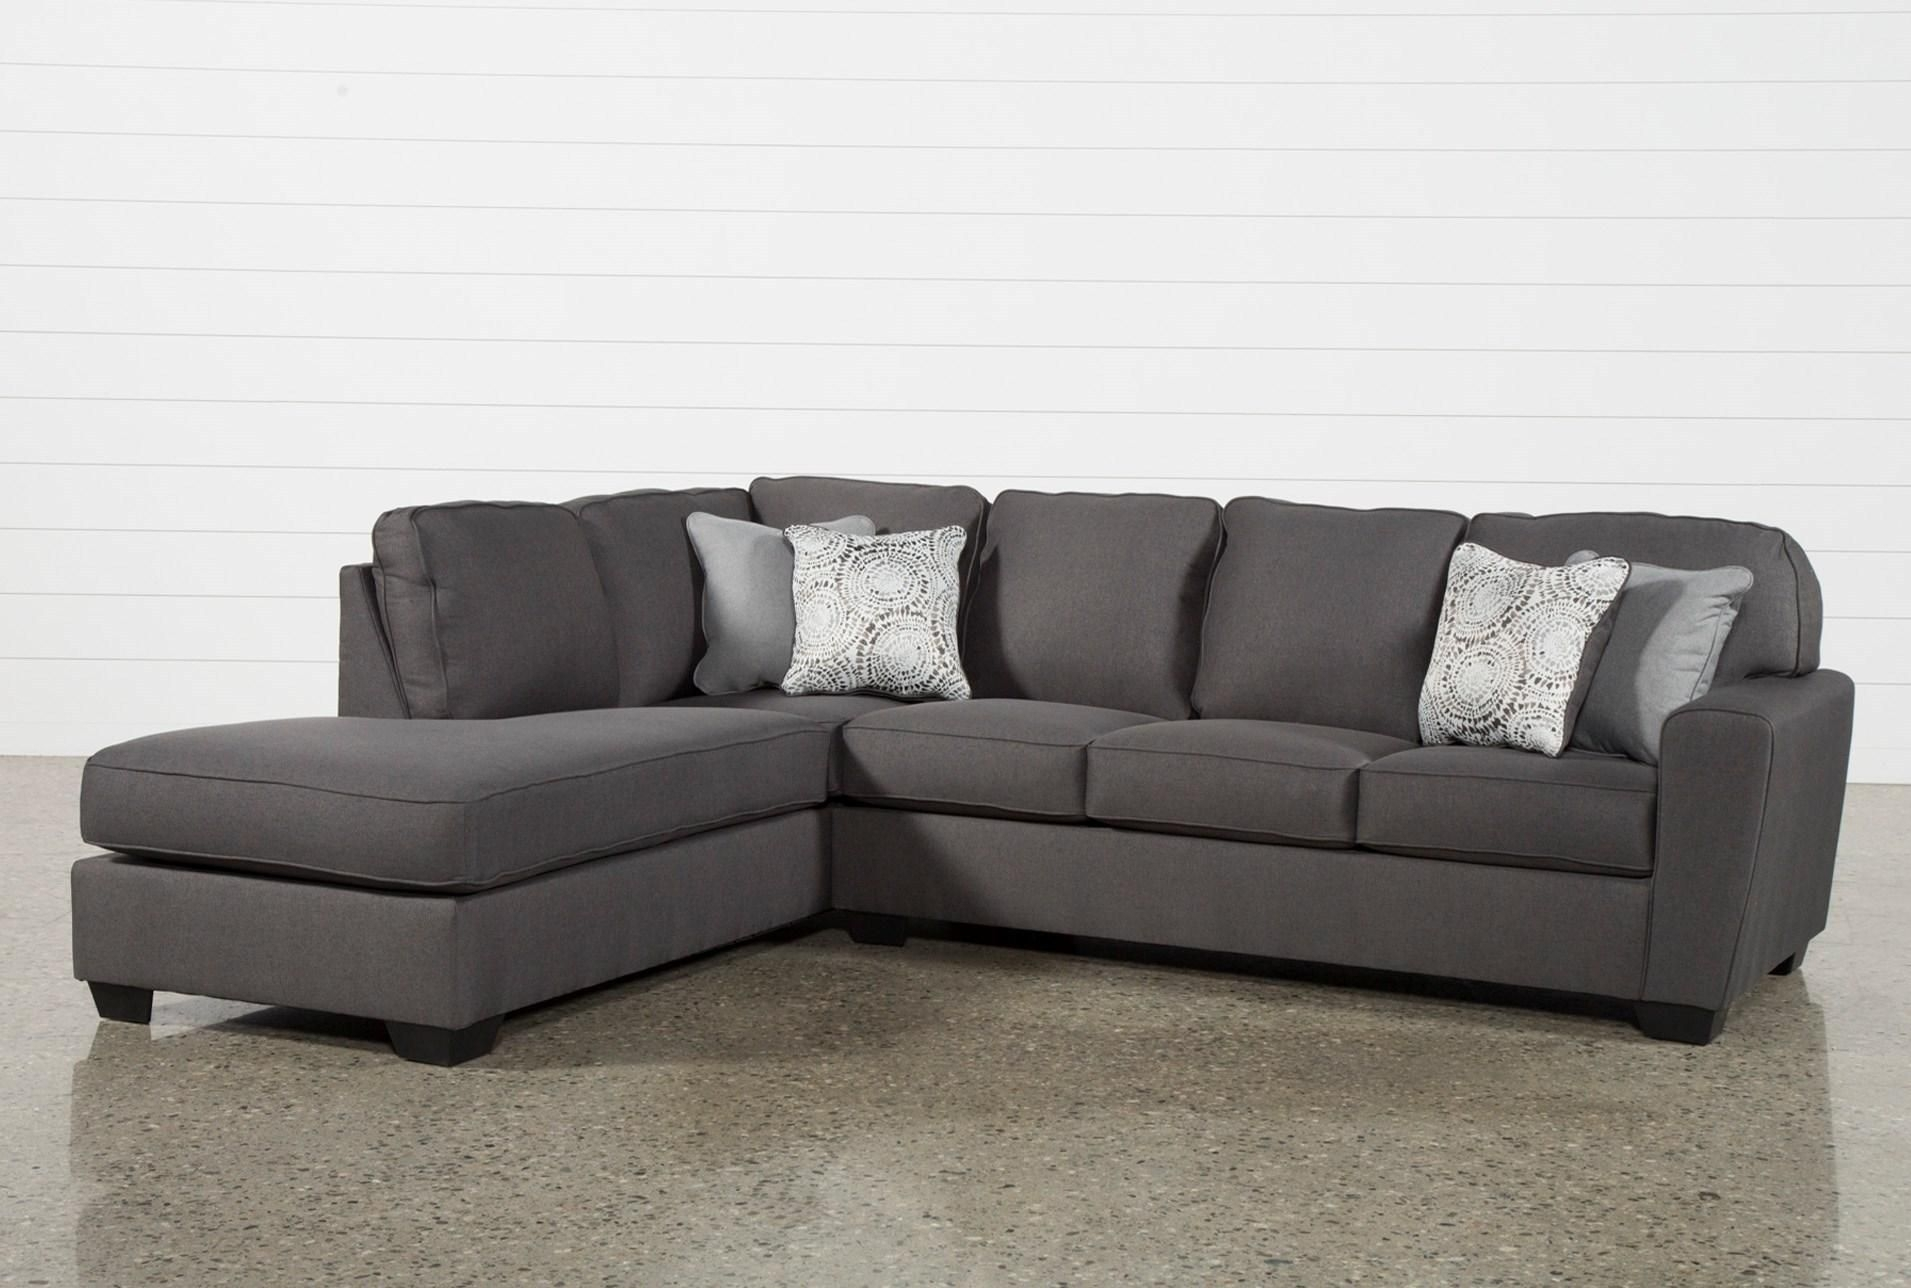 Mcdade Graphite 2 Piece Sectional W/laf Chaise | Graphite, Living with regard to Kerri 2 Piece Sectionals With Laf Chaise (Image 26 of 30)